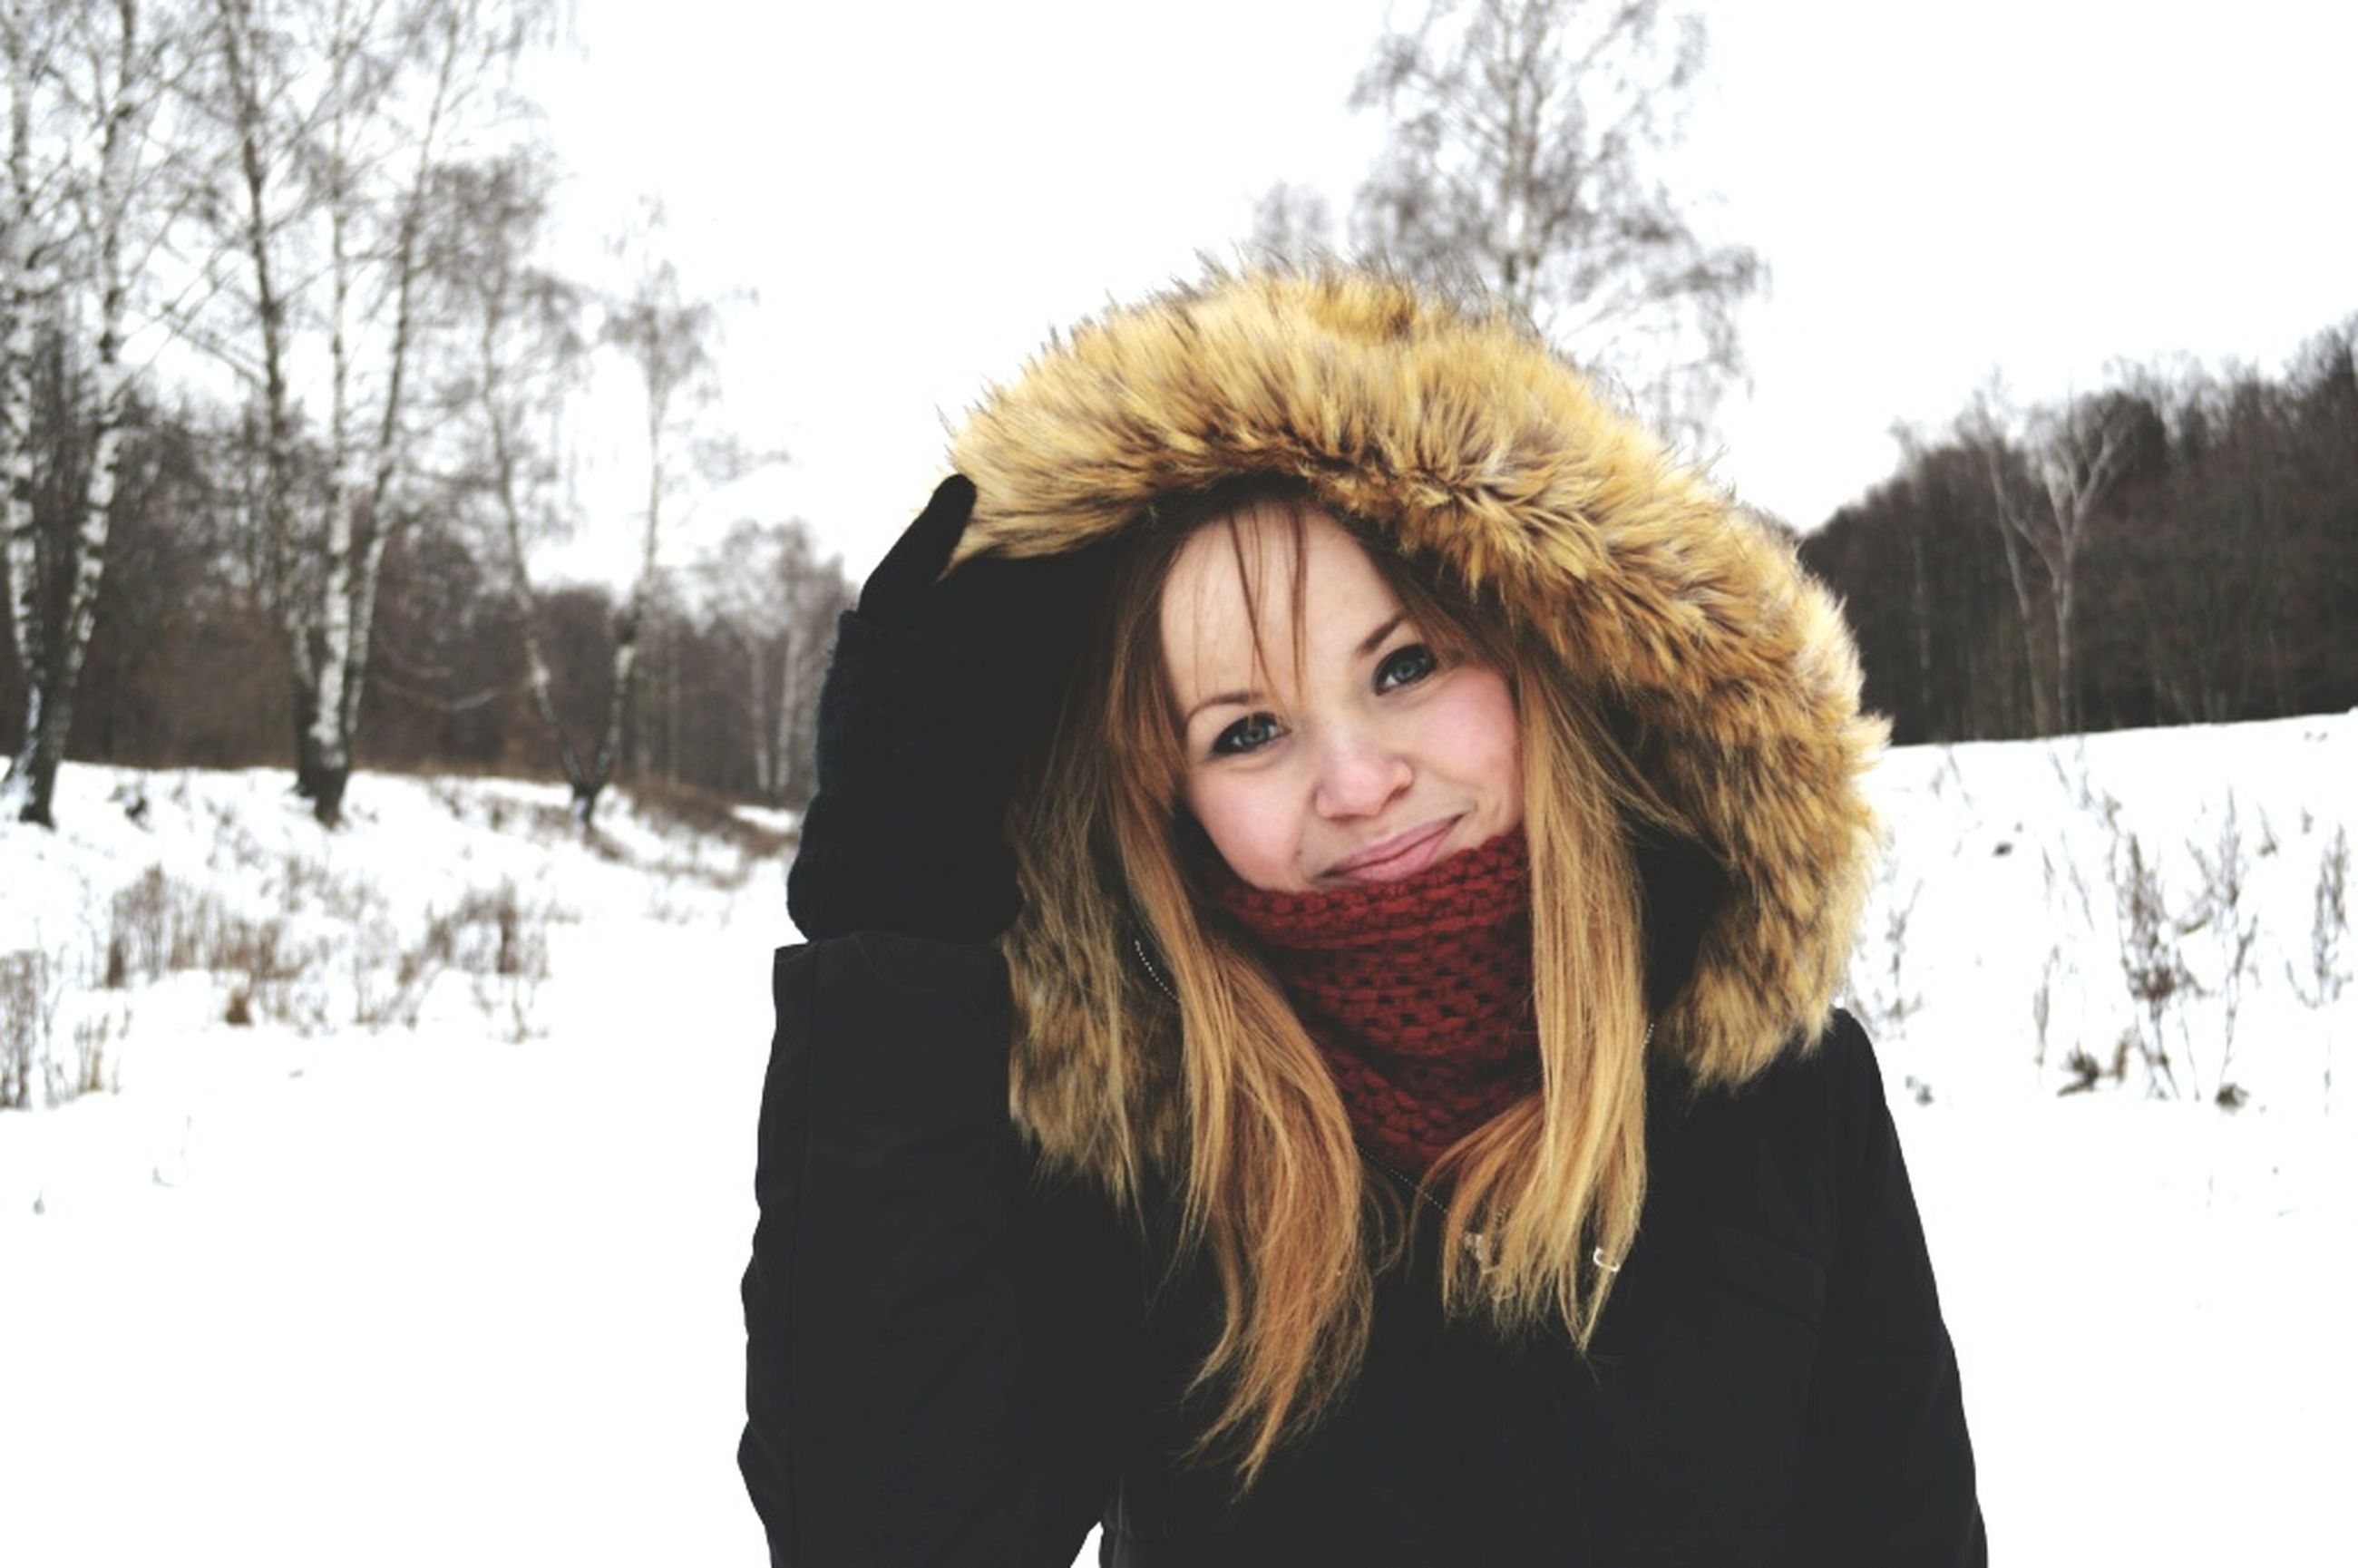 winter, portrait, snow, cold temperature, looking at camera, young adult, front view, lifestyles, person, season, young women, warm clothing, tree, leisure activity, smiling, clear sky, casual clothing, headshot